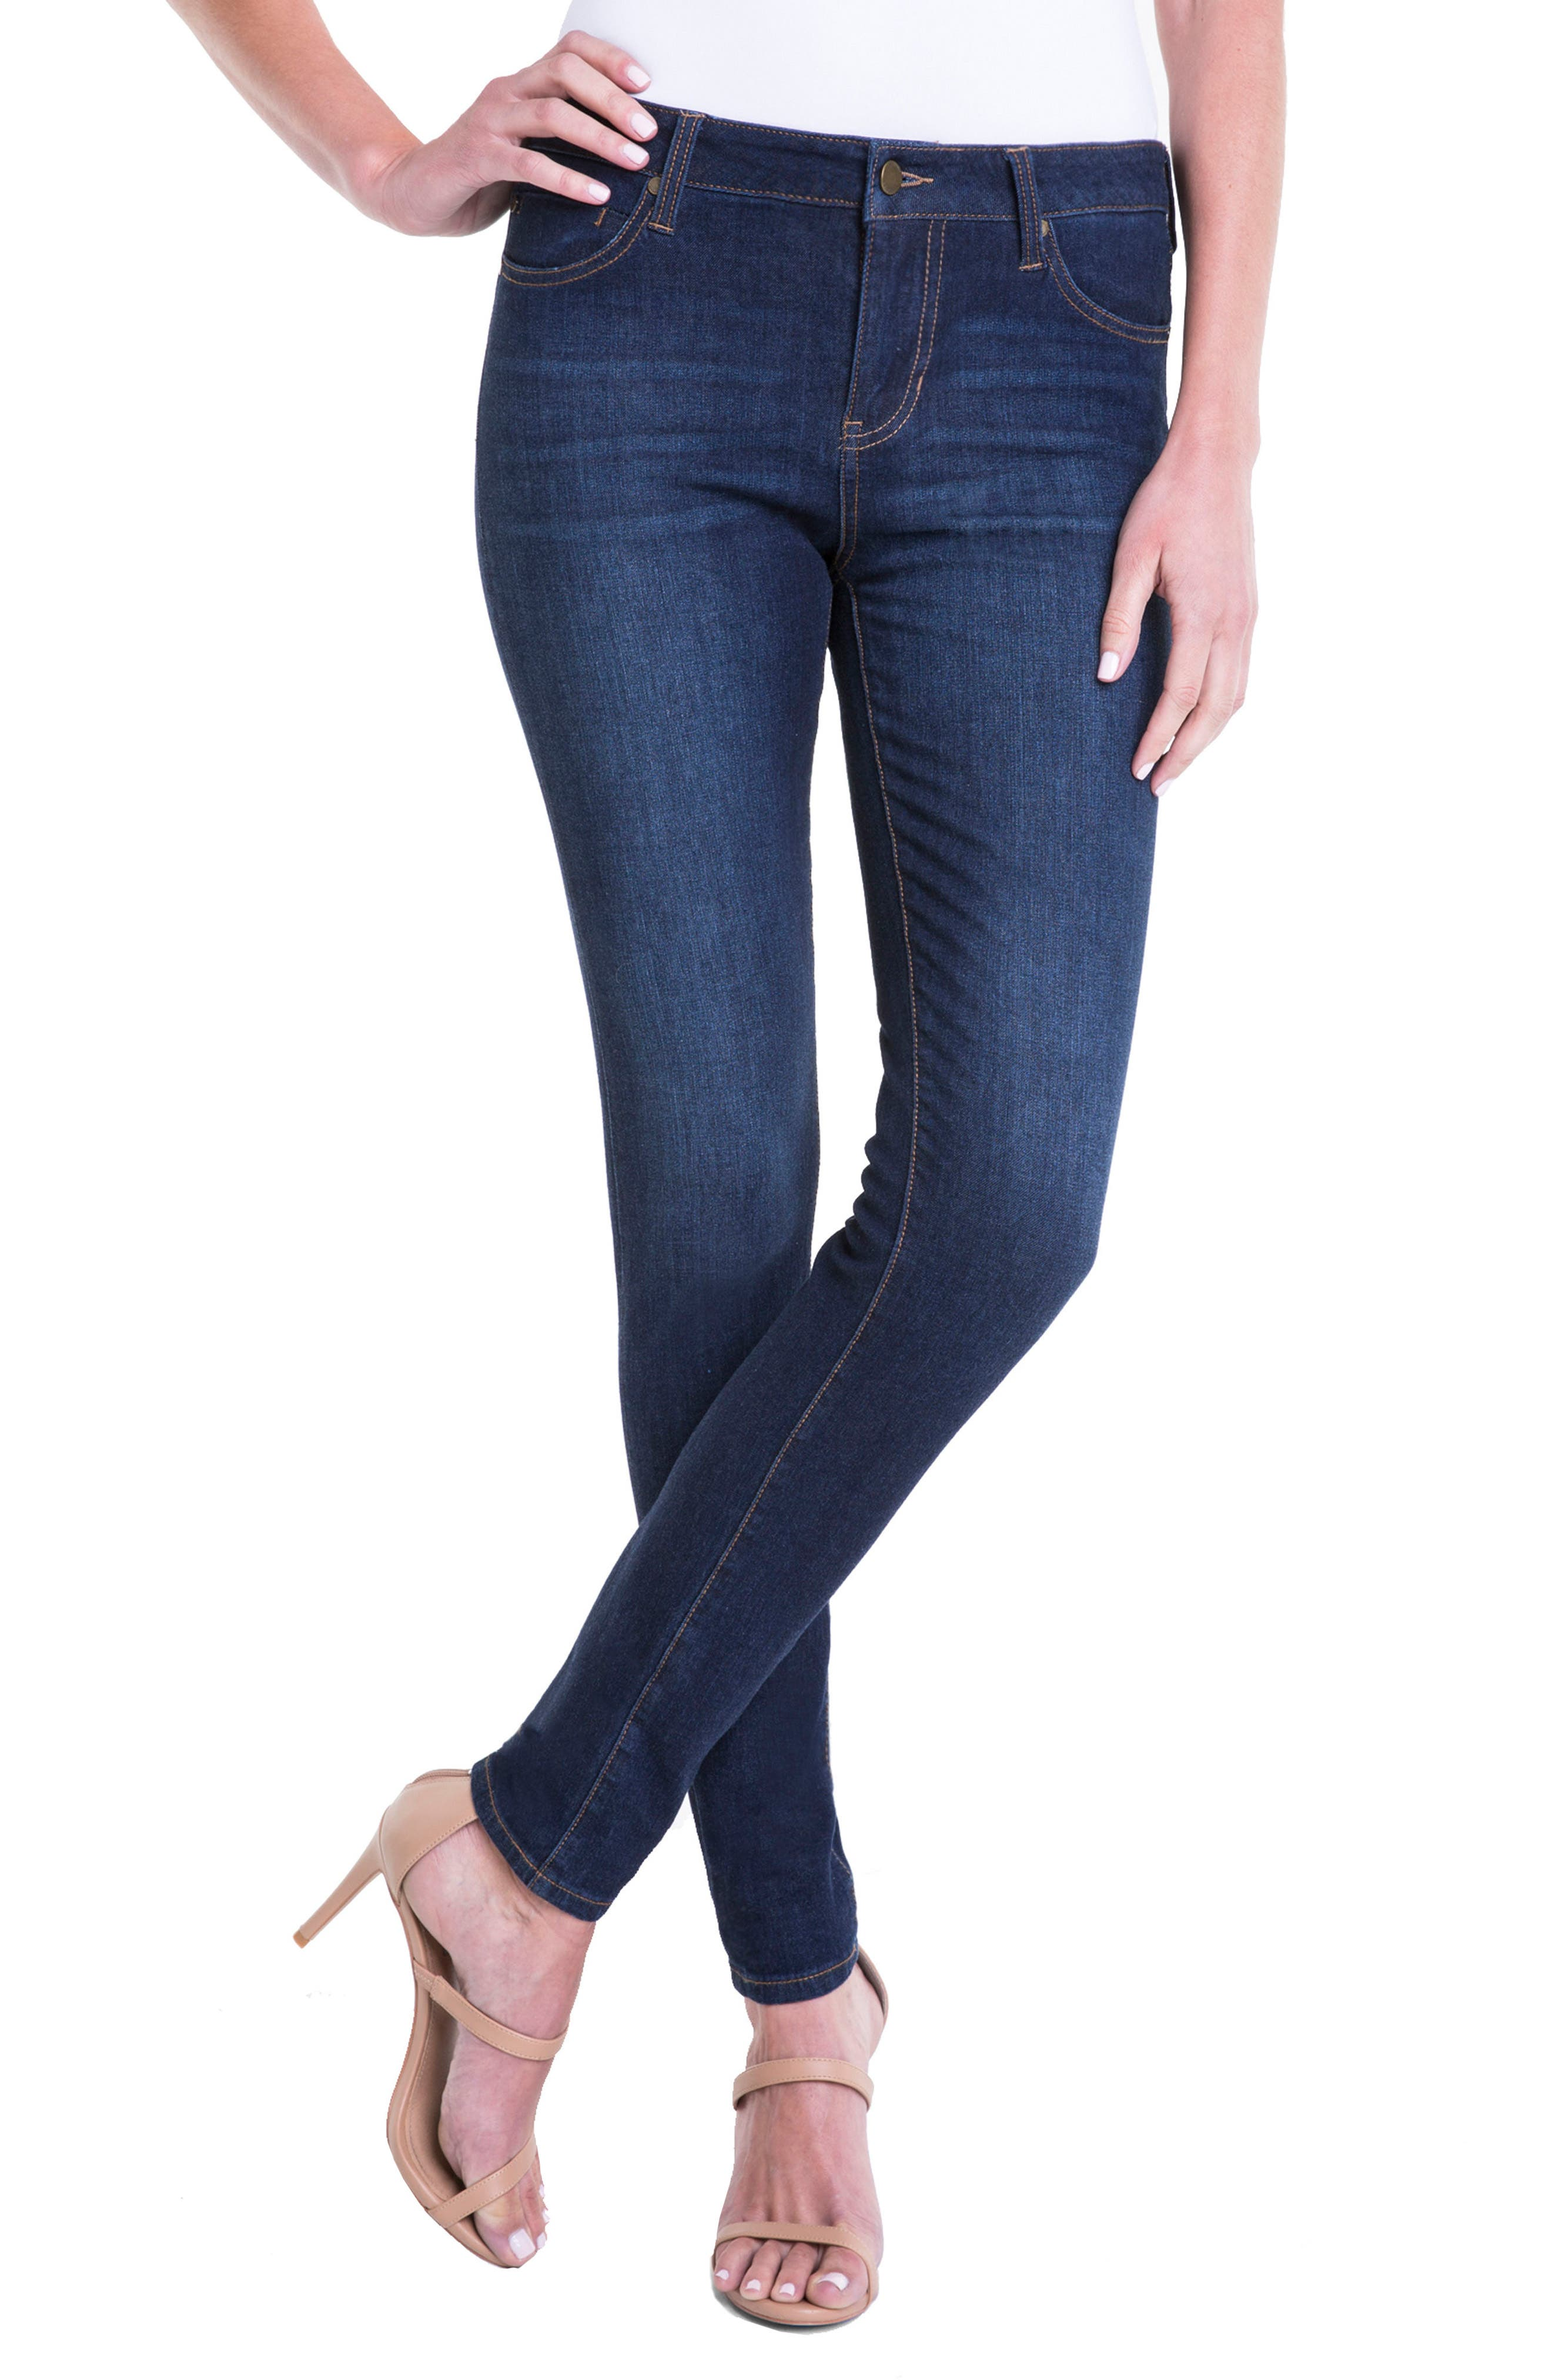 Main Image - Liverpool Jeans Company 'Abby' Stretch Curvy Fit Skinny Jeans (Dark Blue)